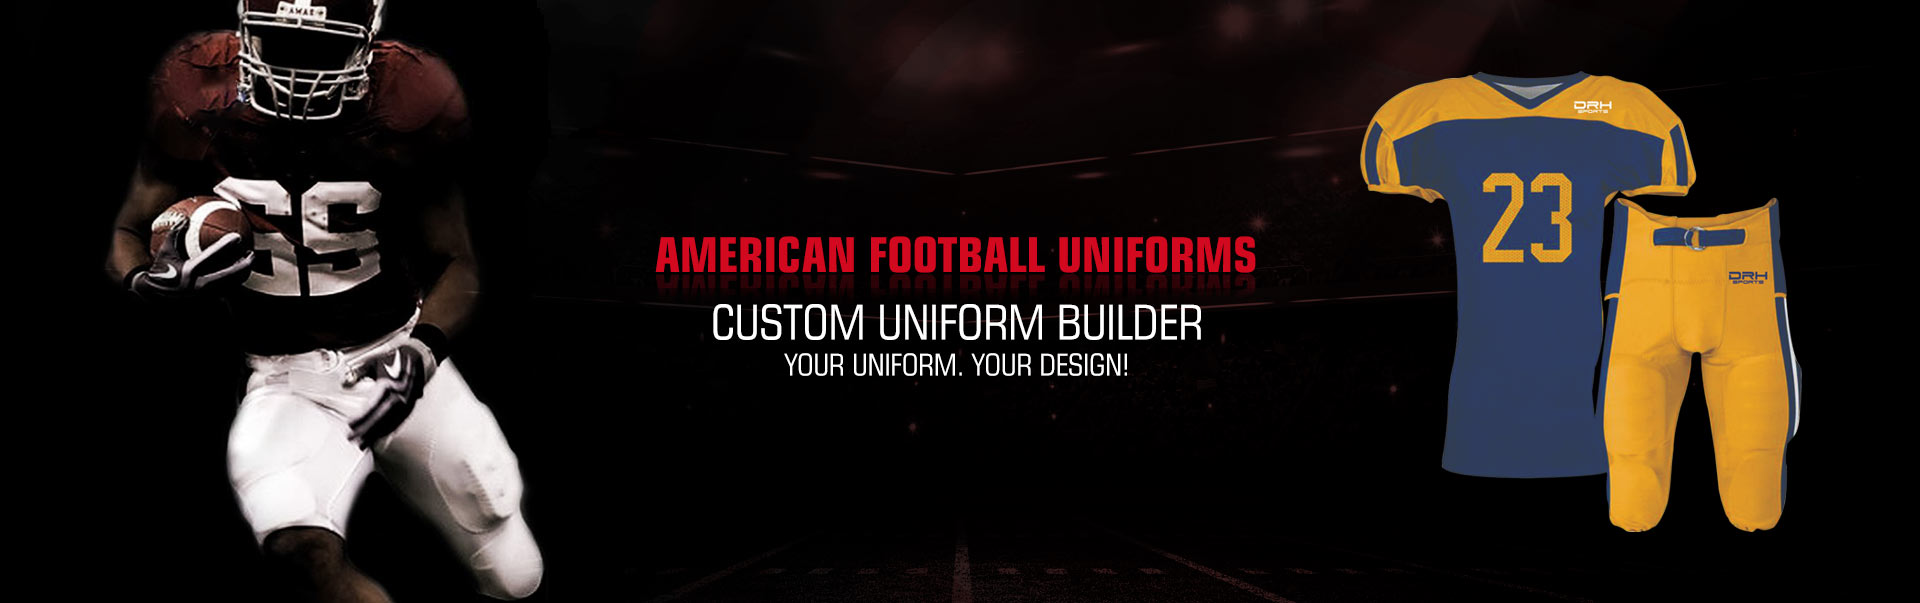 American Football Uniform Wholesaler, Suppliers in Saint John